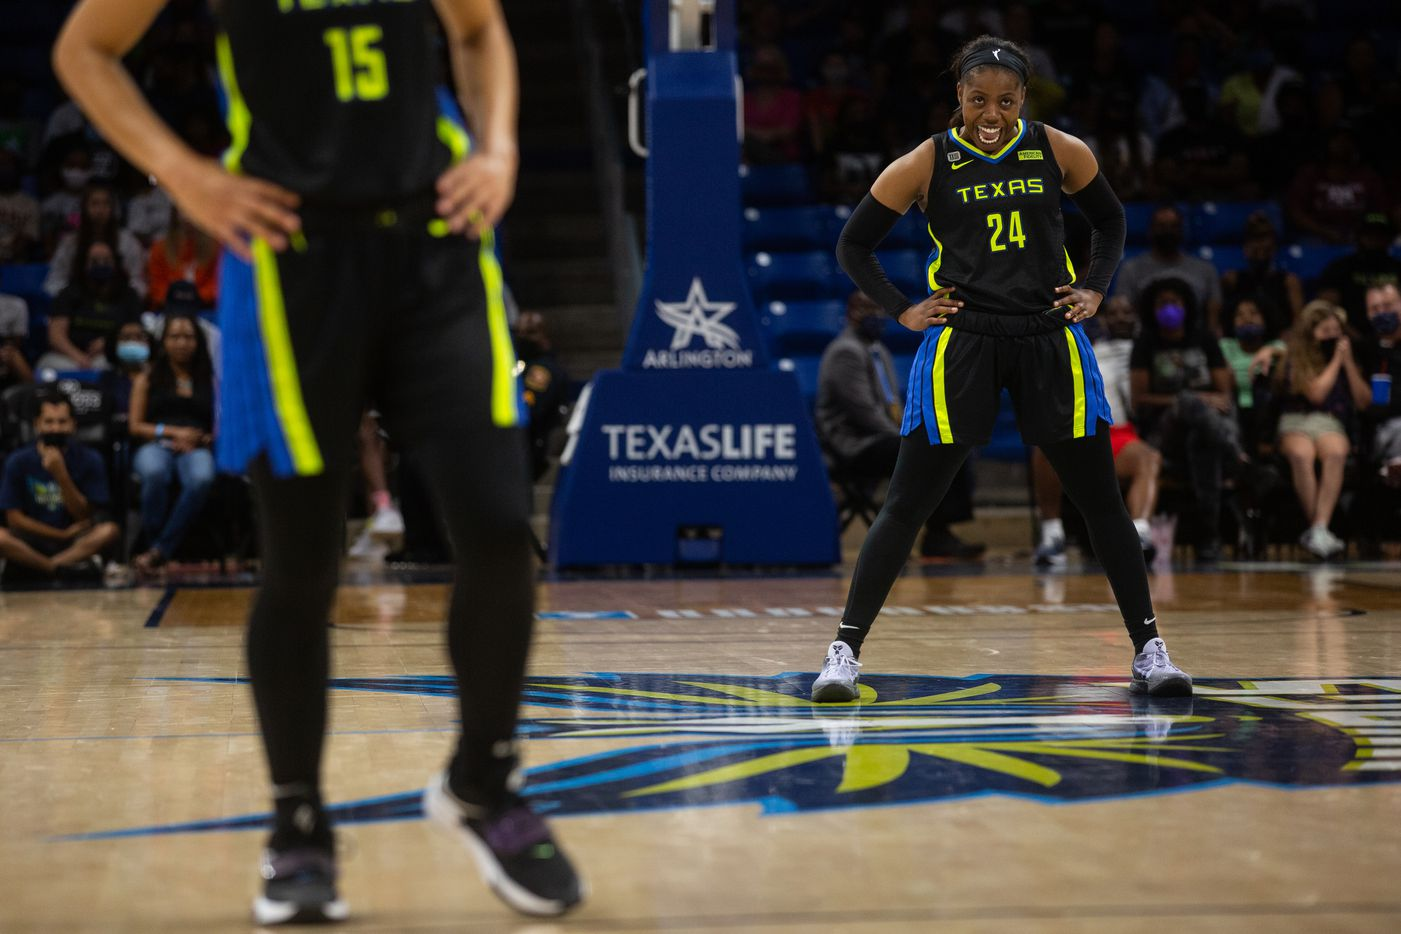 Dallas Wings guard Arike Ogunbowale (24) reacts as she watches a free throw at their game against NY Liberty at College Park Center in Arlington, TX on September 11, 2021.  (Shelby Tauber/Special Contributor)